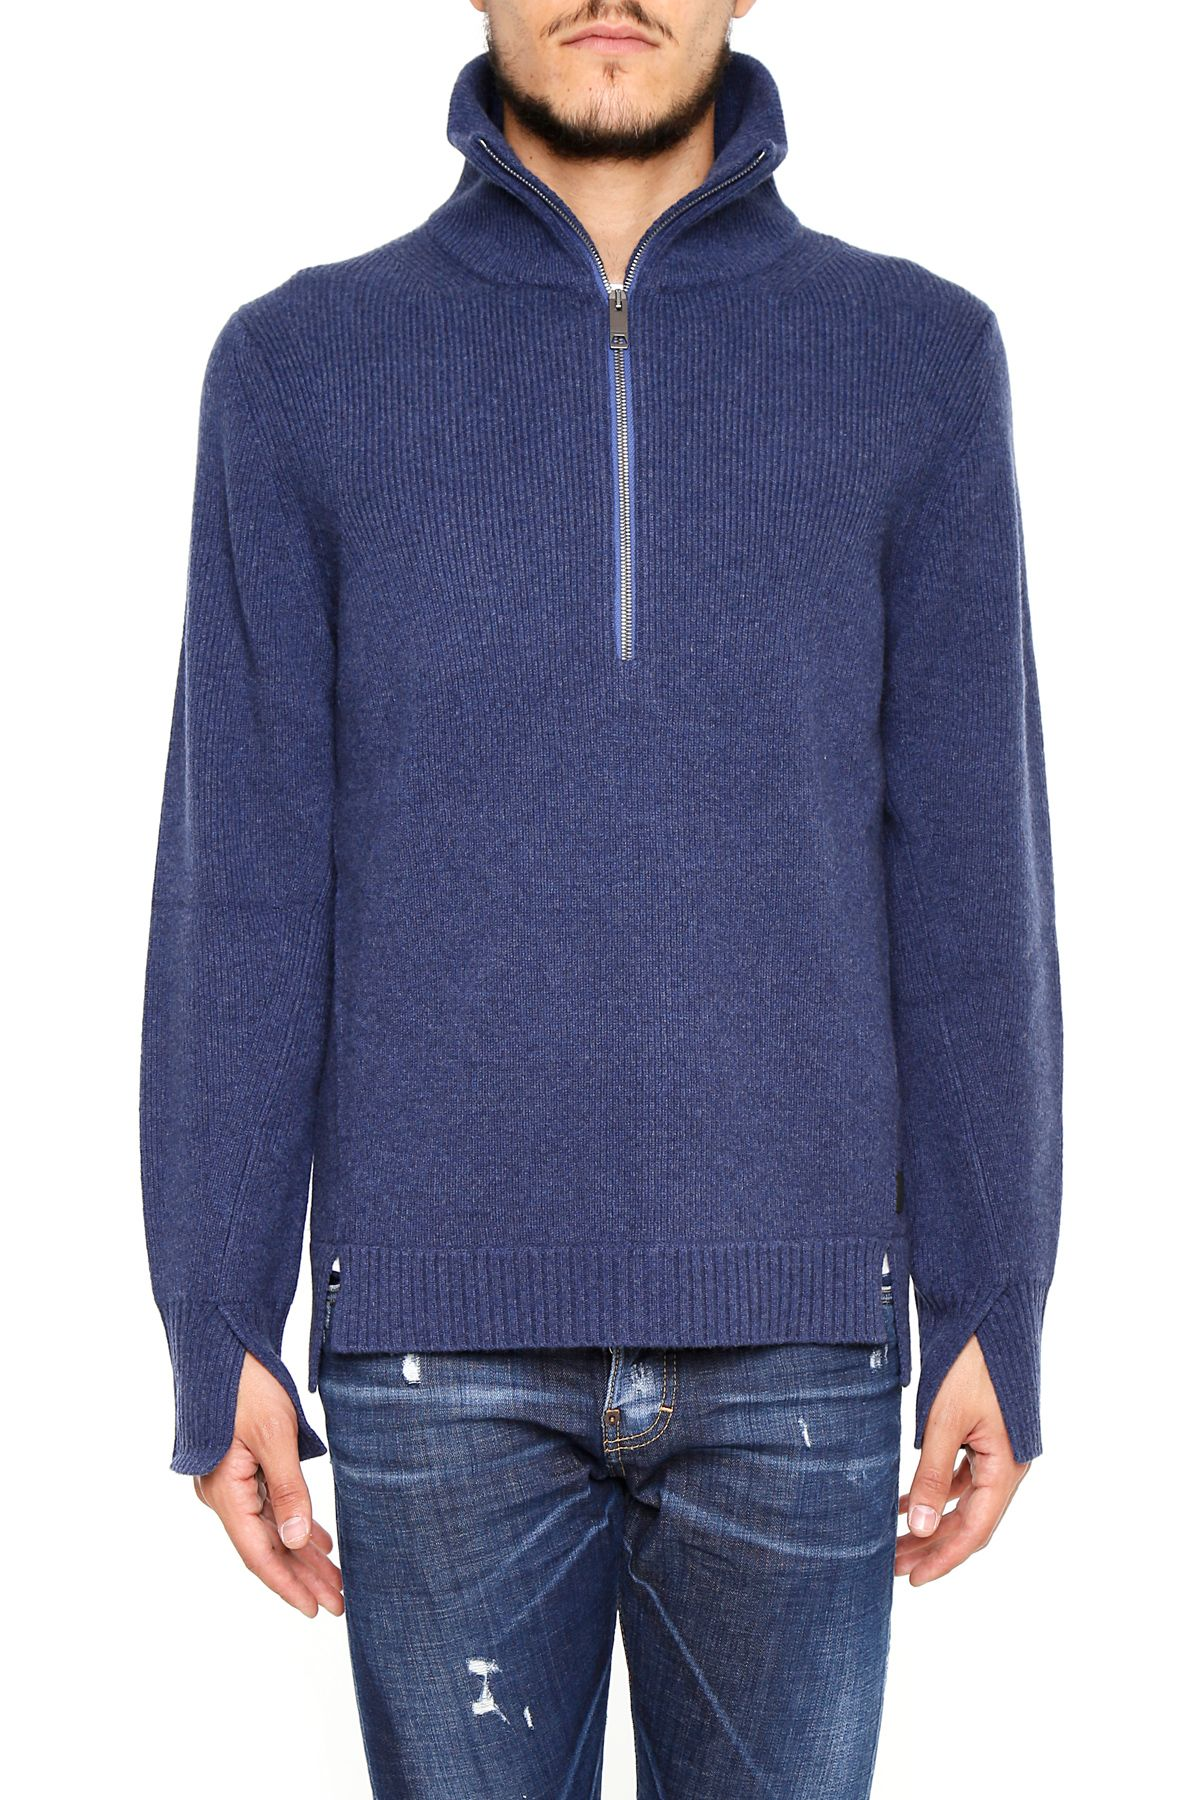 Rodwell Pullover